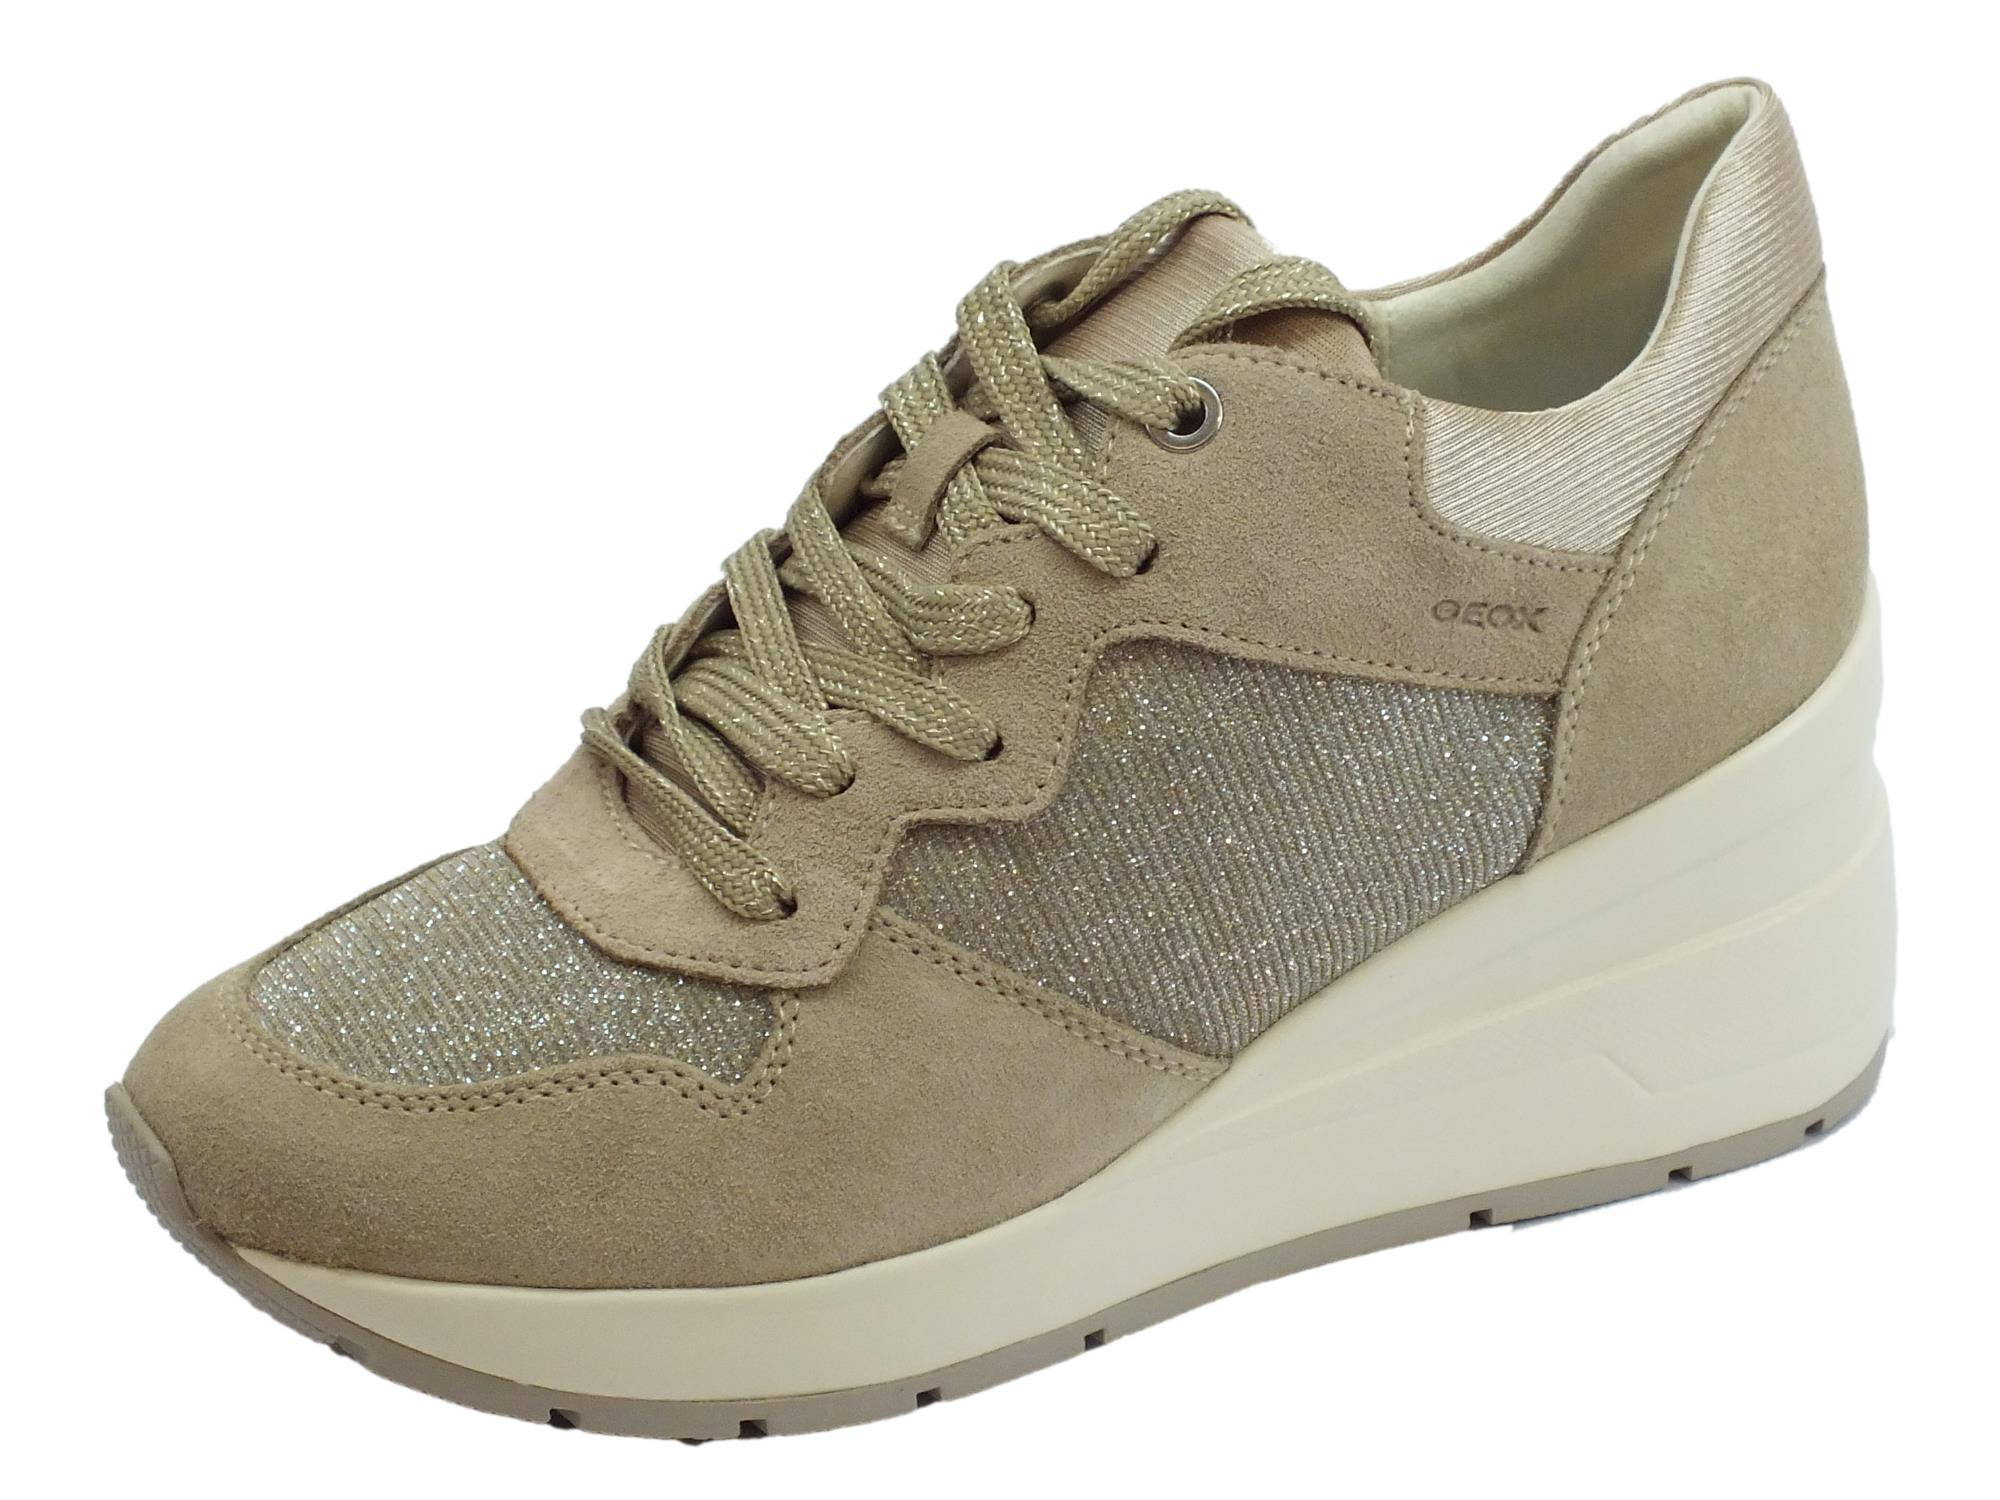 Sneakers Geox per donna in camoscio taupe e glitter argento zeppa alta -  mainstreetblytheville.org a8a0cae196a